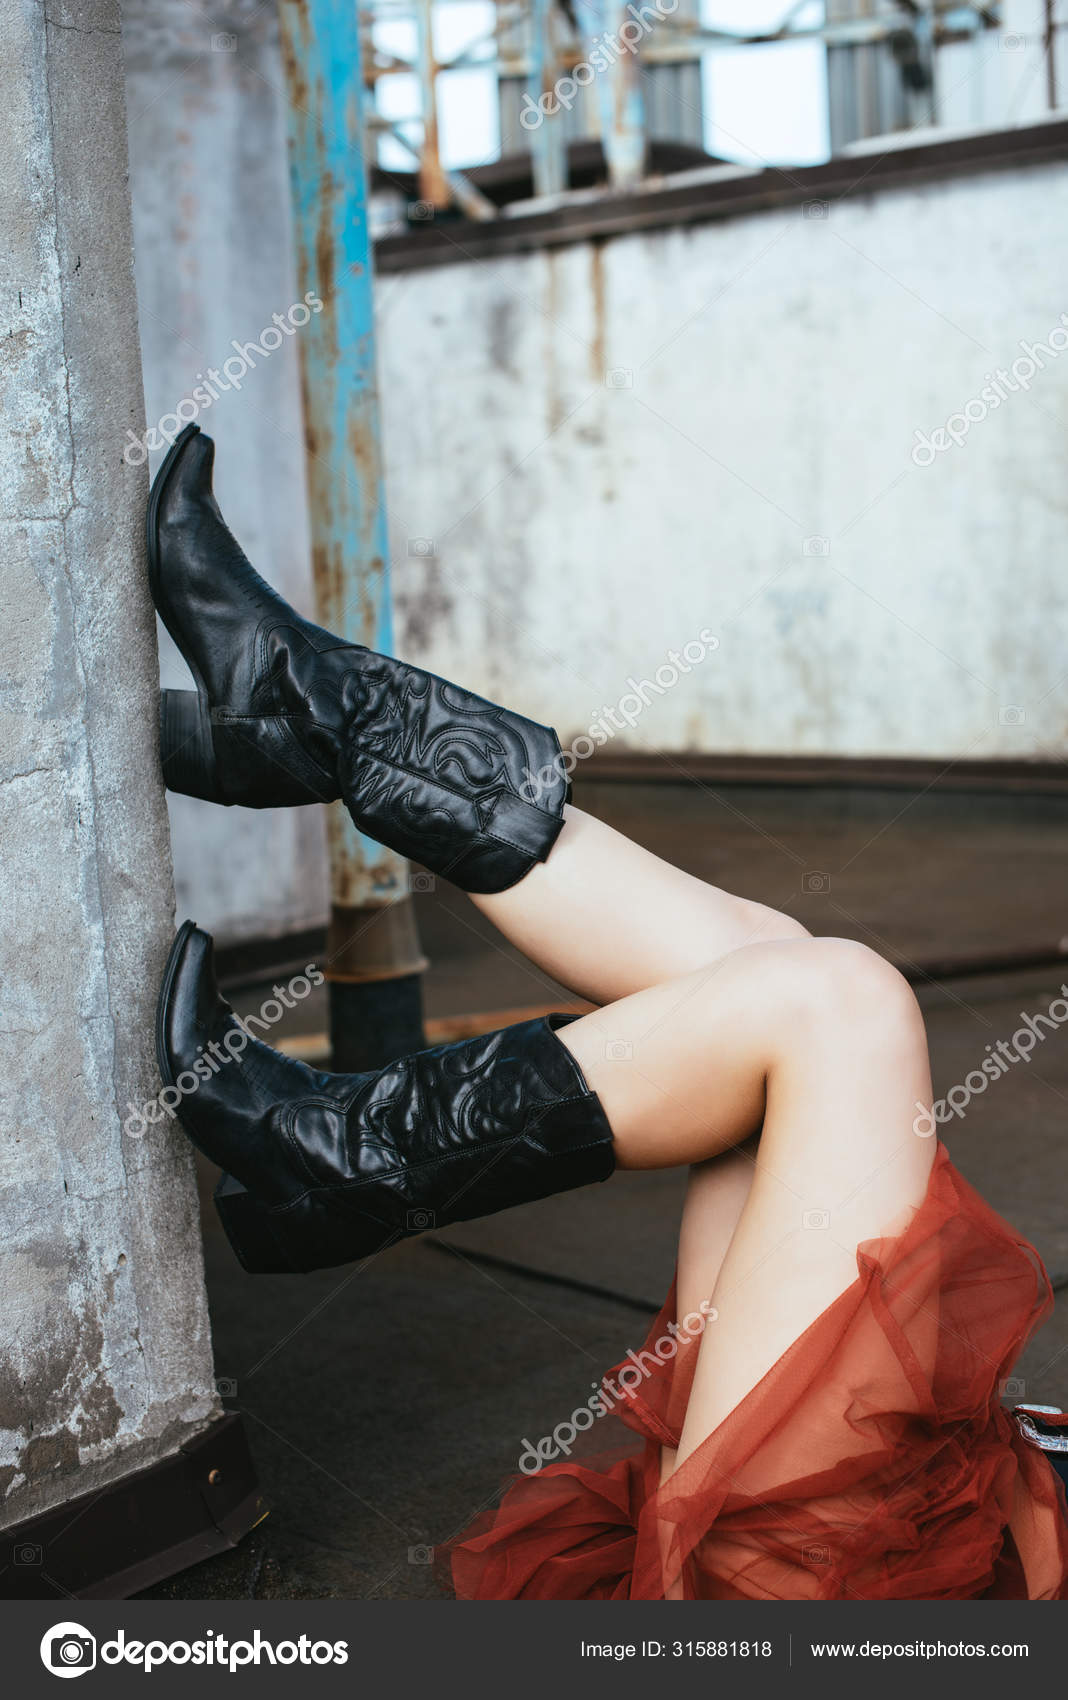 Girl Cowboy Boots Urban Roof — Stock